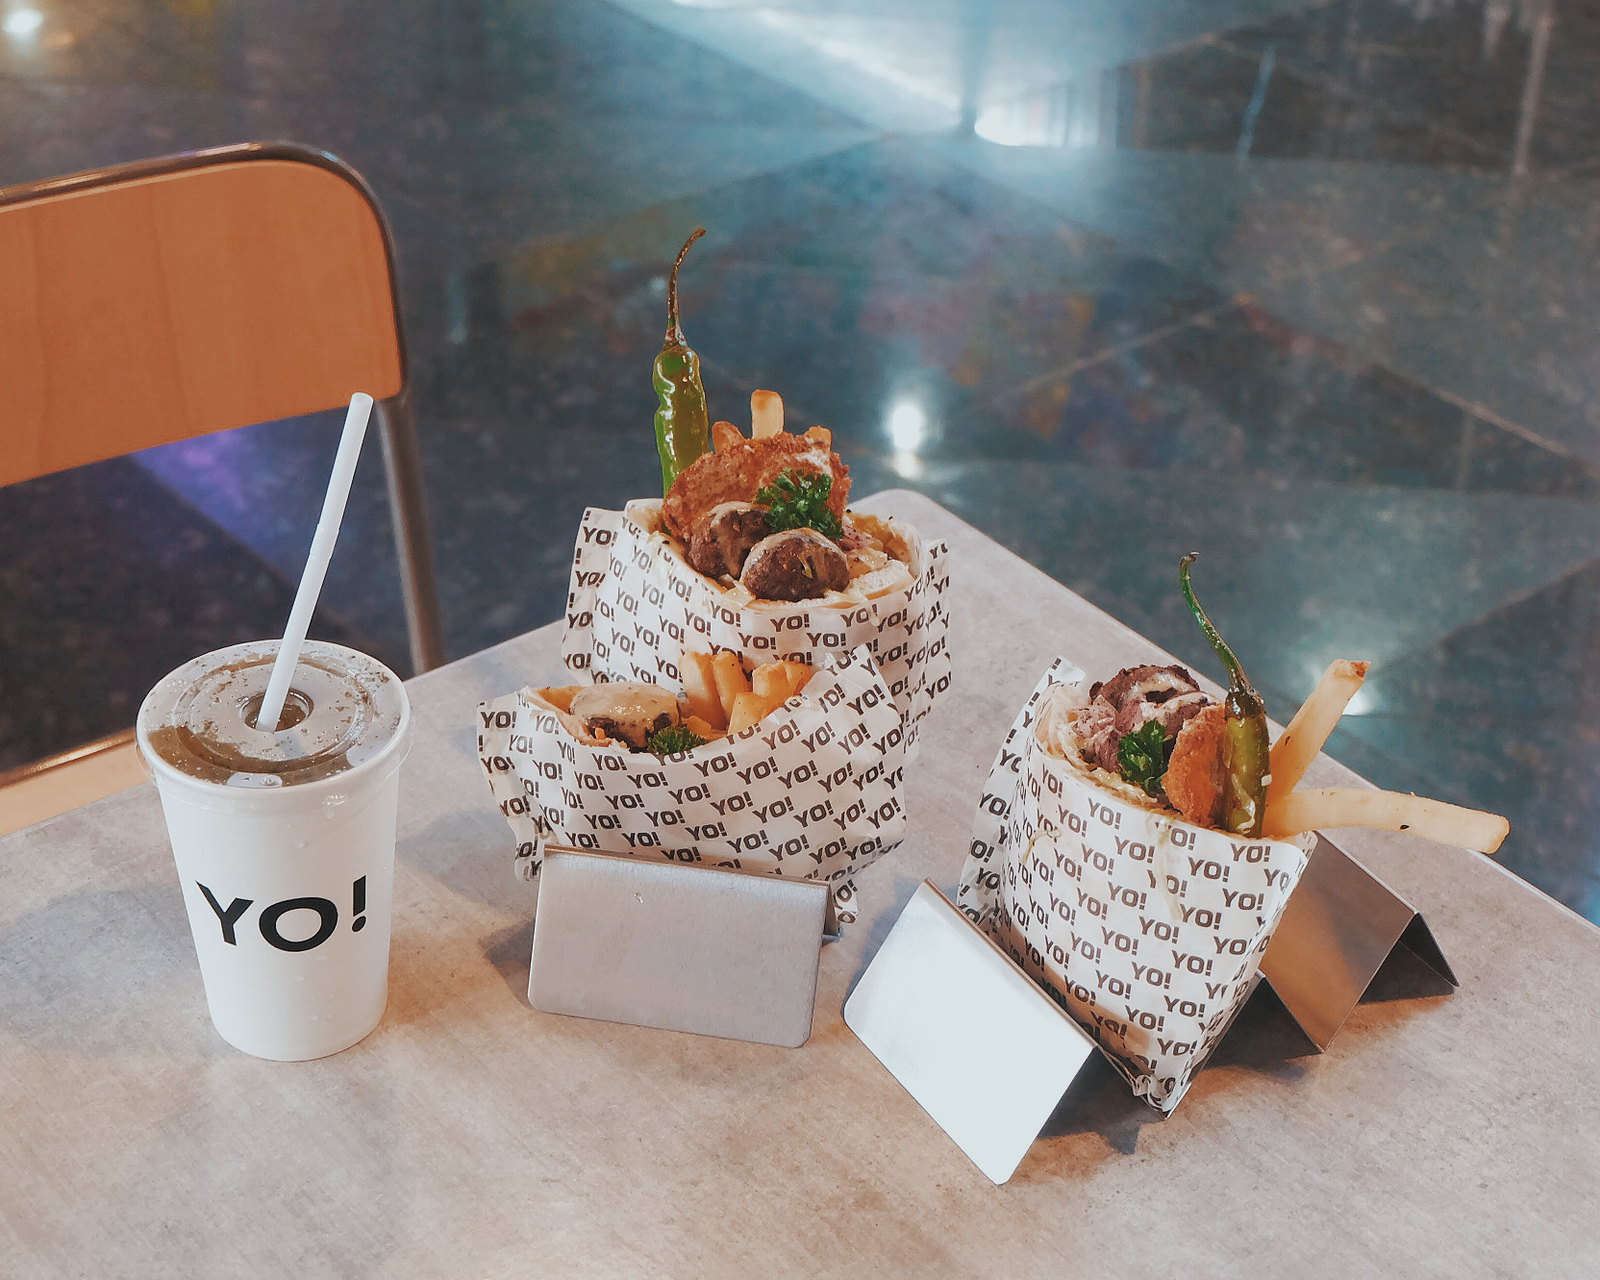 falafel yo greenbelt review